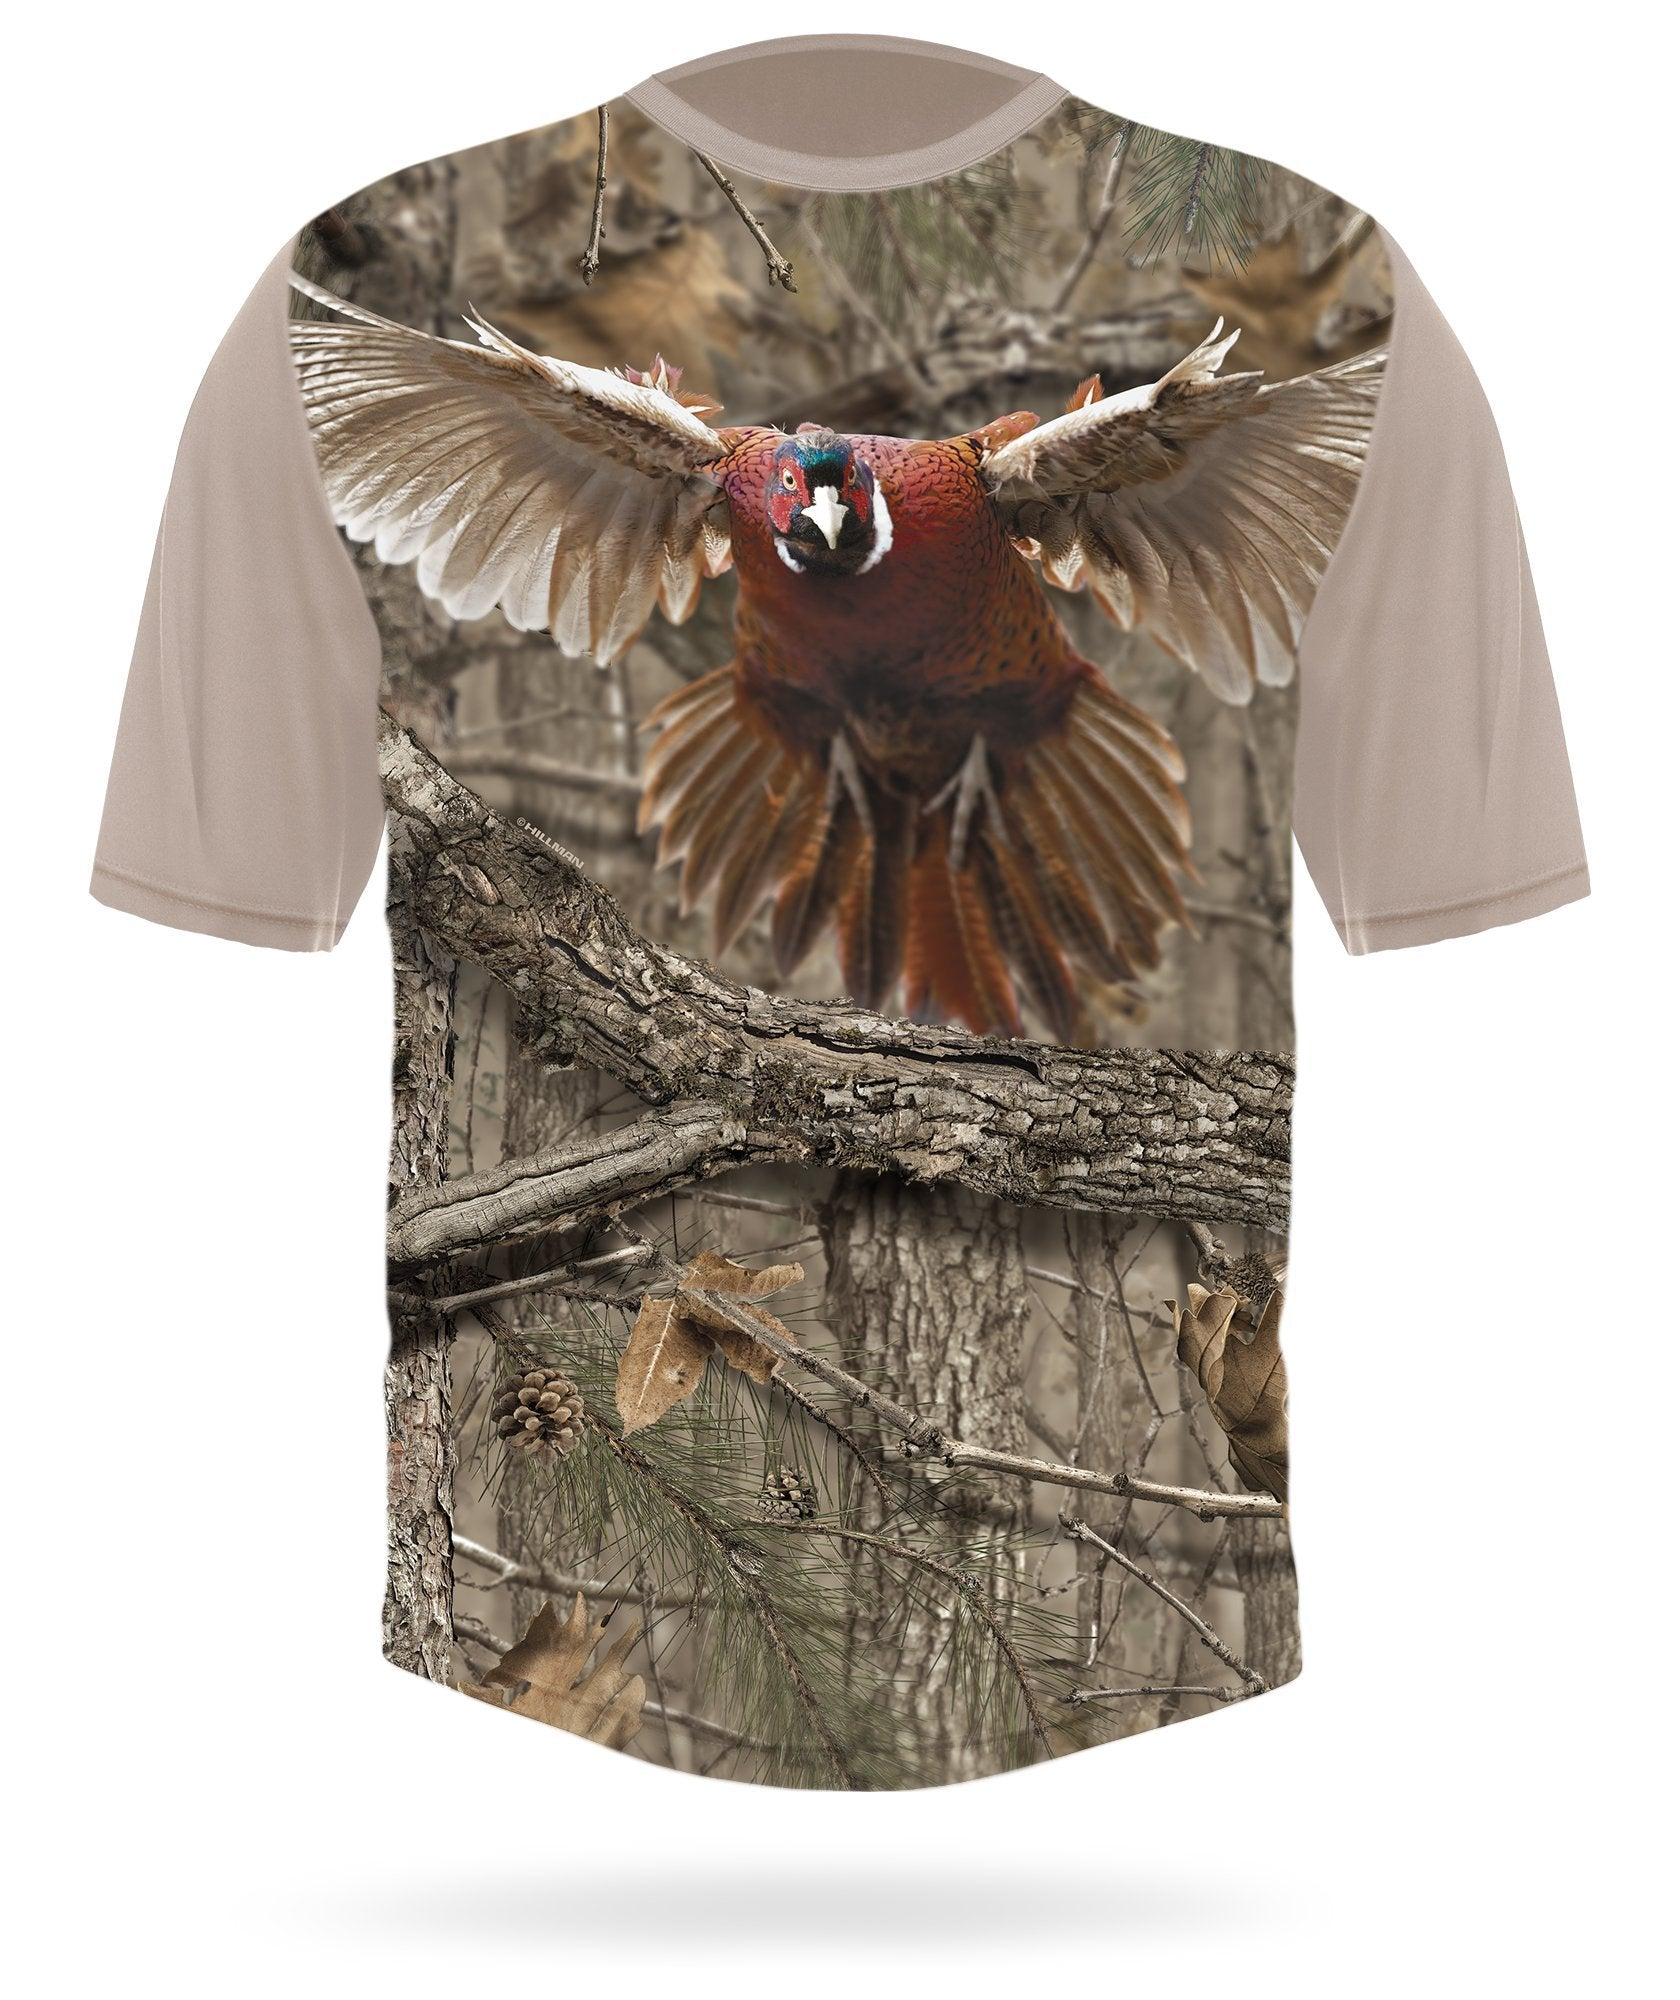 Pheasant t-shirt short sleeve camo - HILLMAN® hunting gear